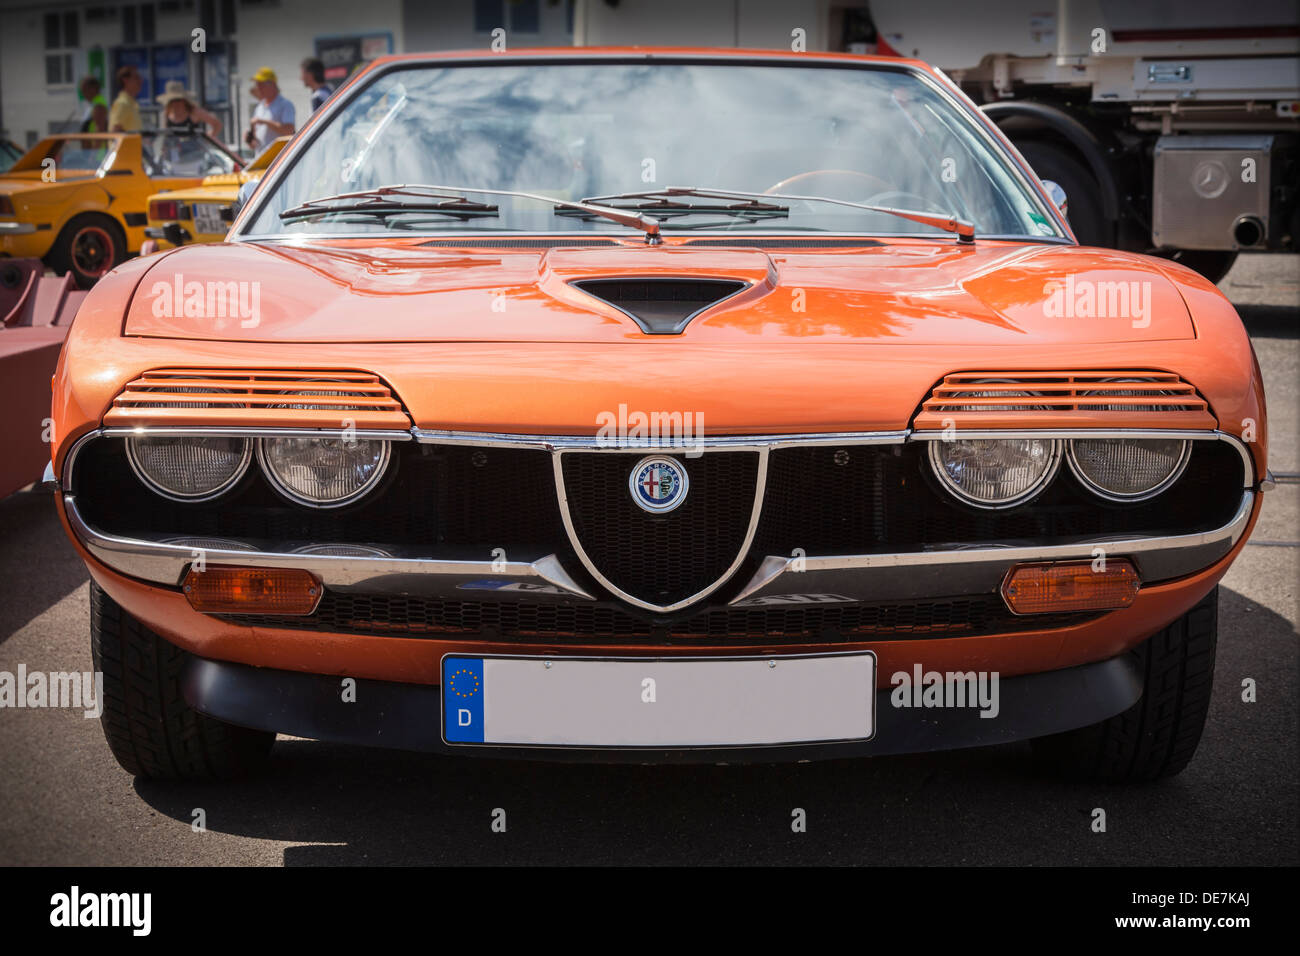 germany bavaria oldtimer alfa romeo bertone stock photo 60405146 alamy. Black Bedroom Furniture Sets. Home Design Ideas